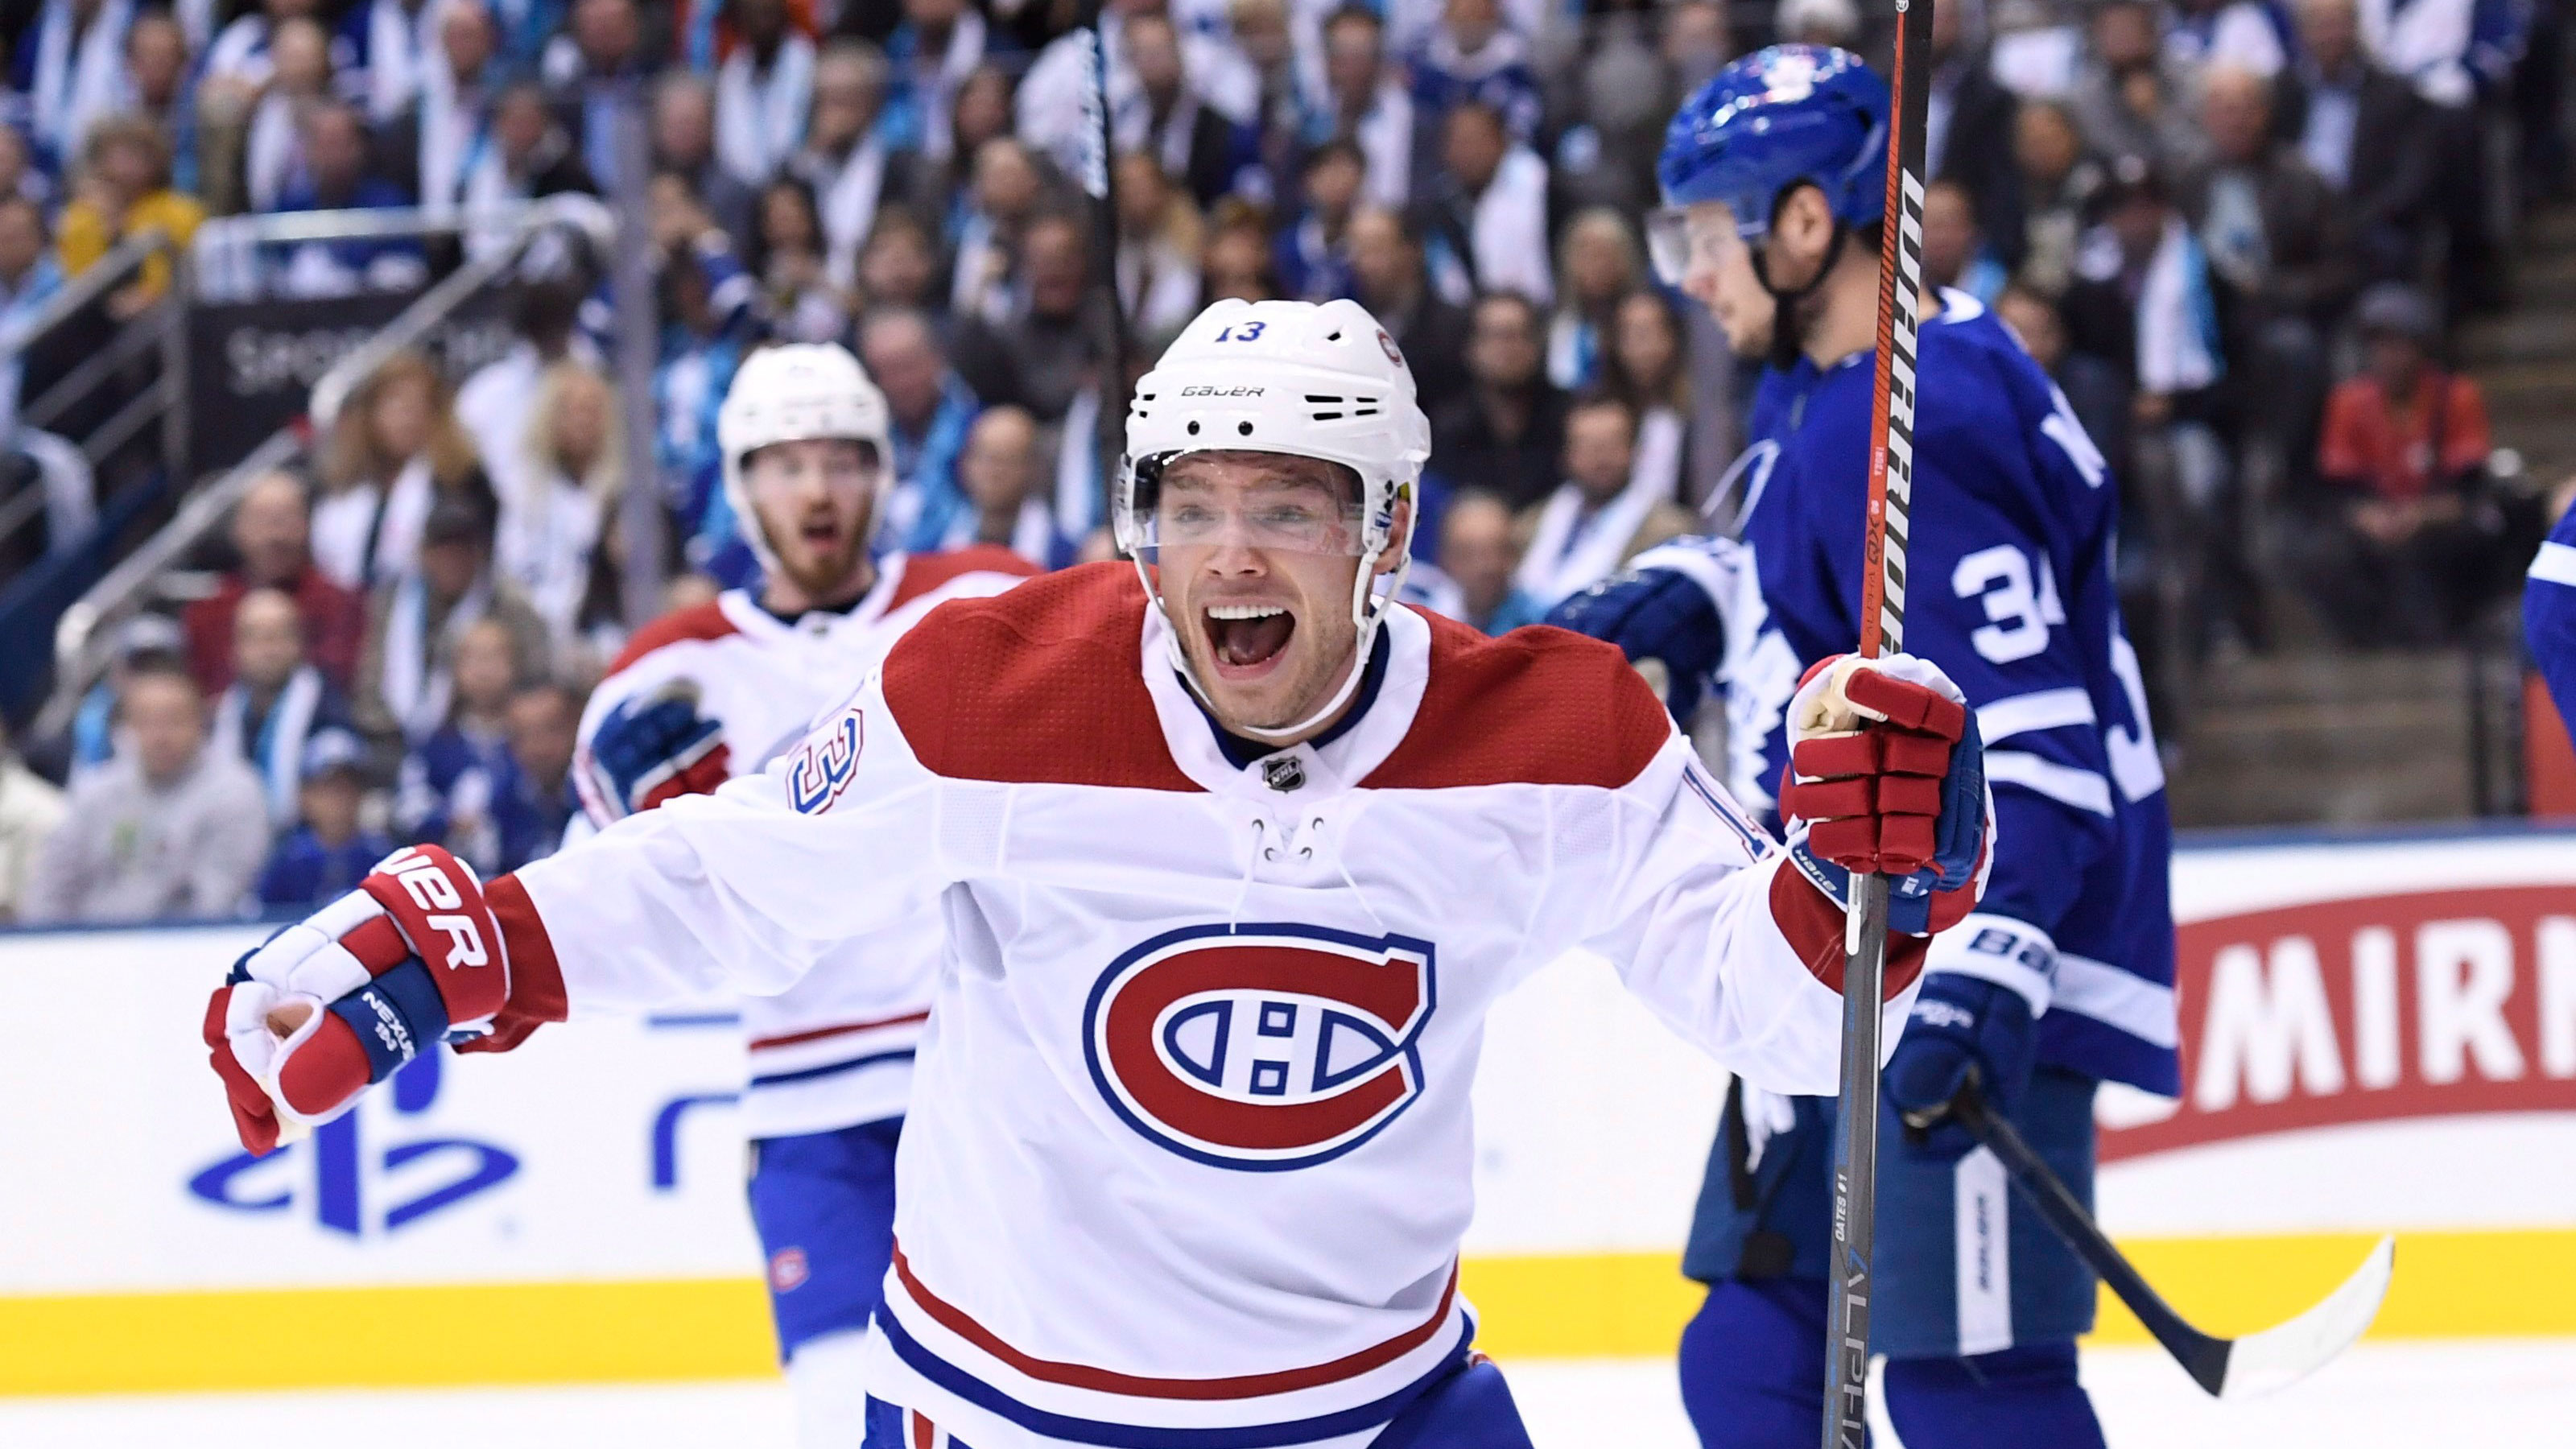 Coach Julien Has Set The Tone For Canadiens To Surprise This Season